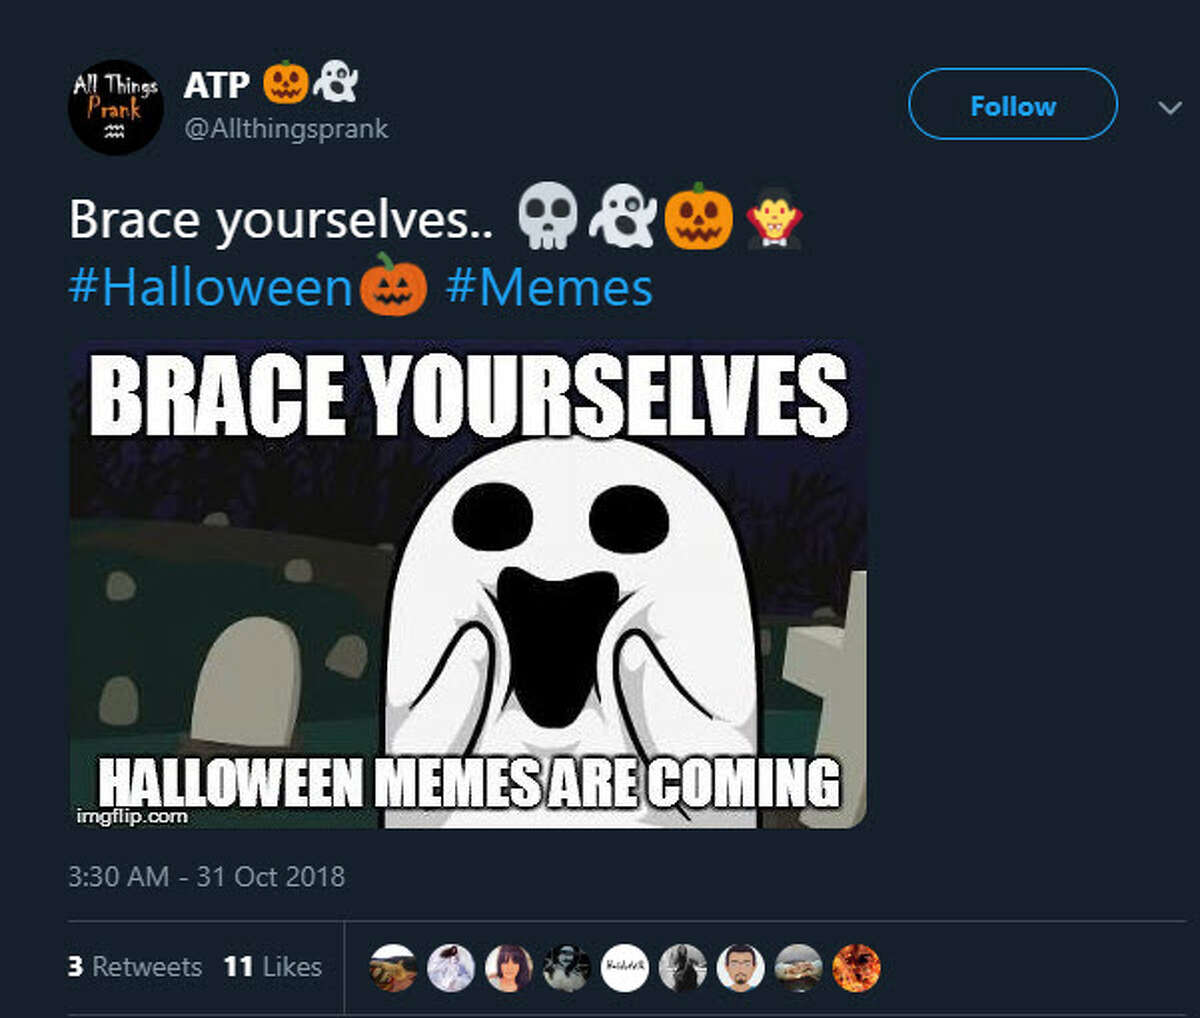 Spooky Memes The ghost said it all. It's Oct. 31, and while that brings the ghosts and ghouls out from hiding, it also brings out a special kind of meme culture. The spoopy meme. Enjoy the internet's finest and click through for more.